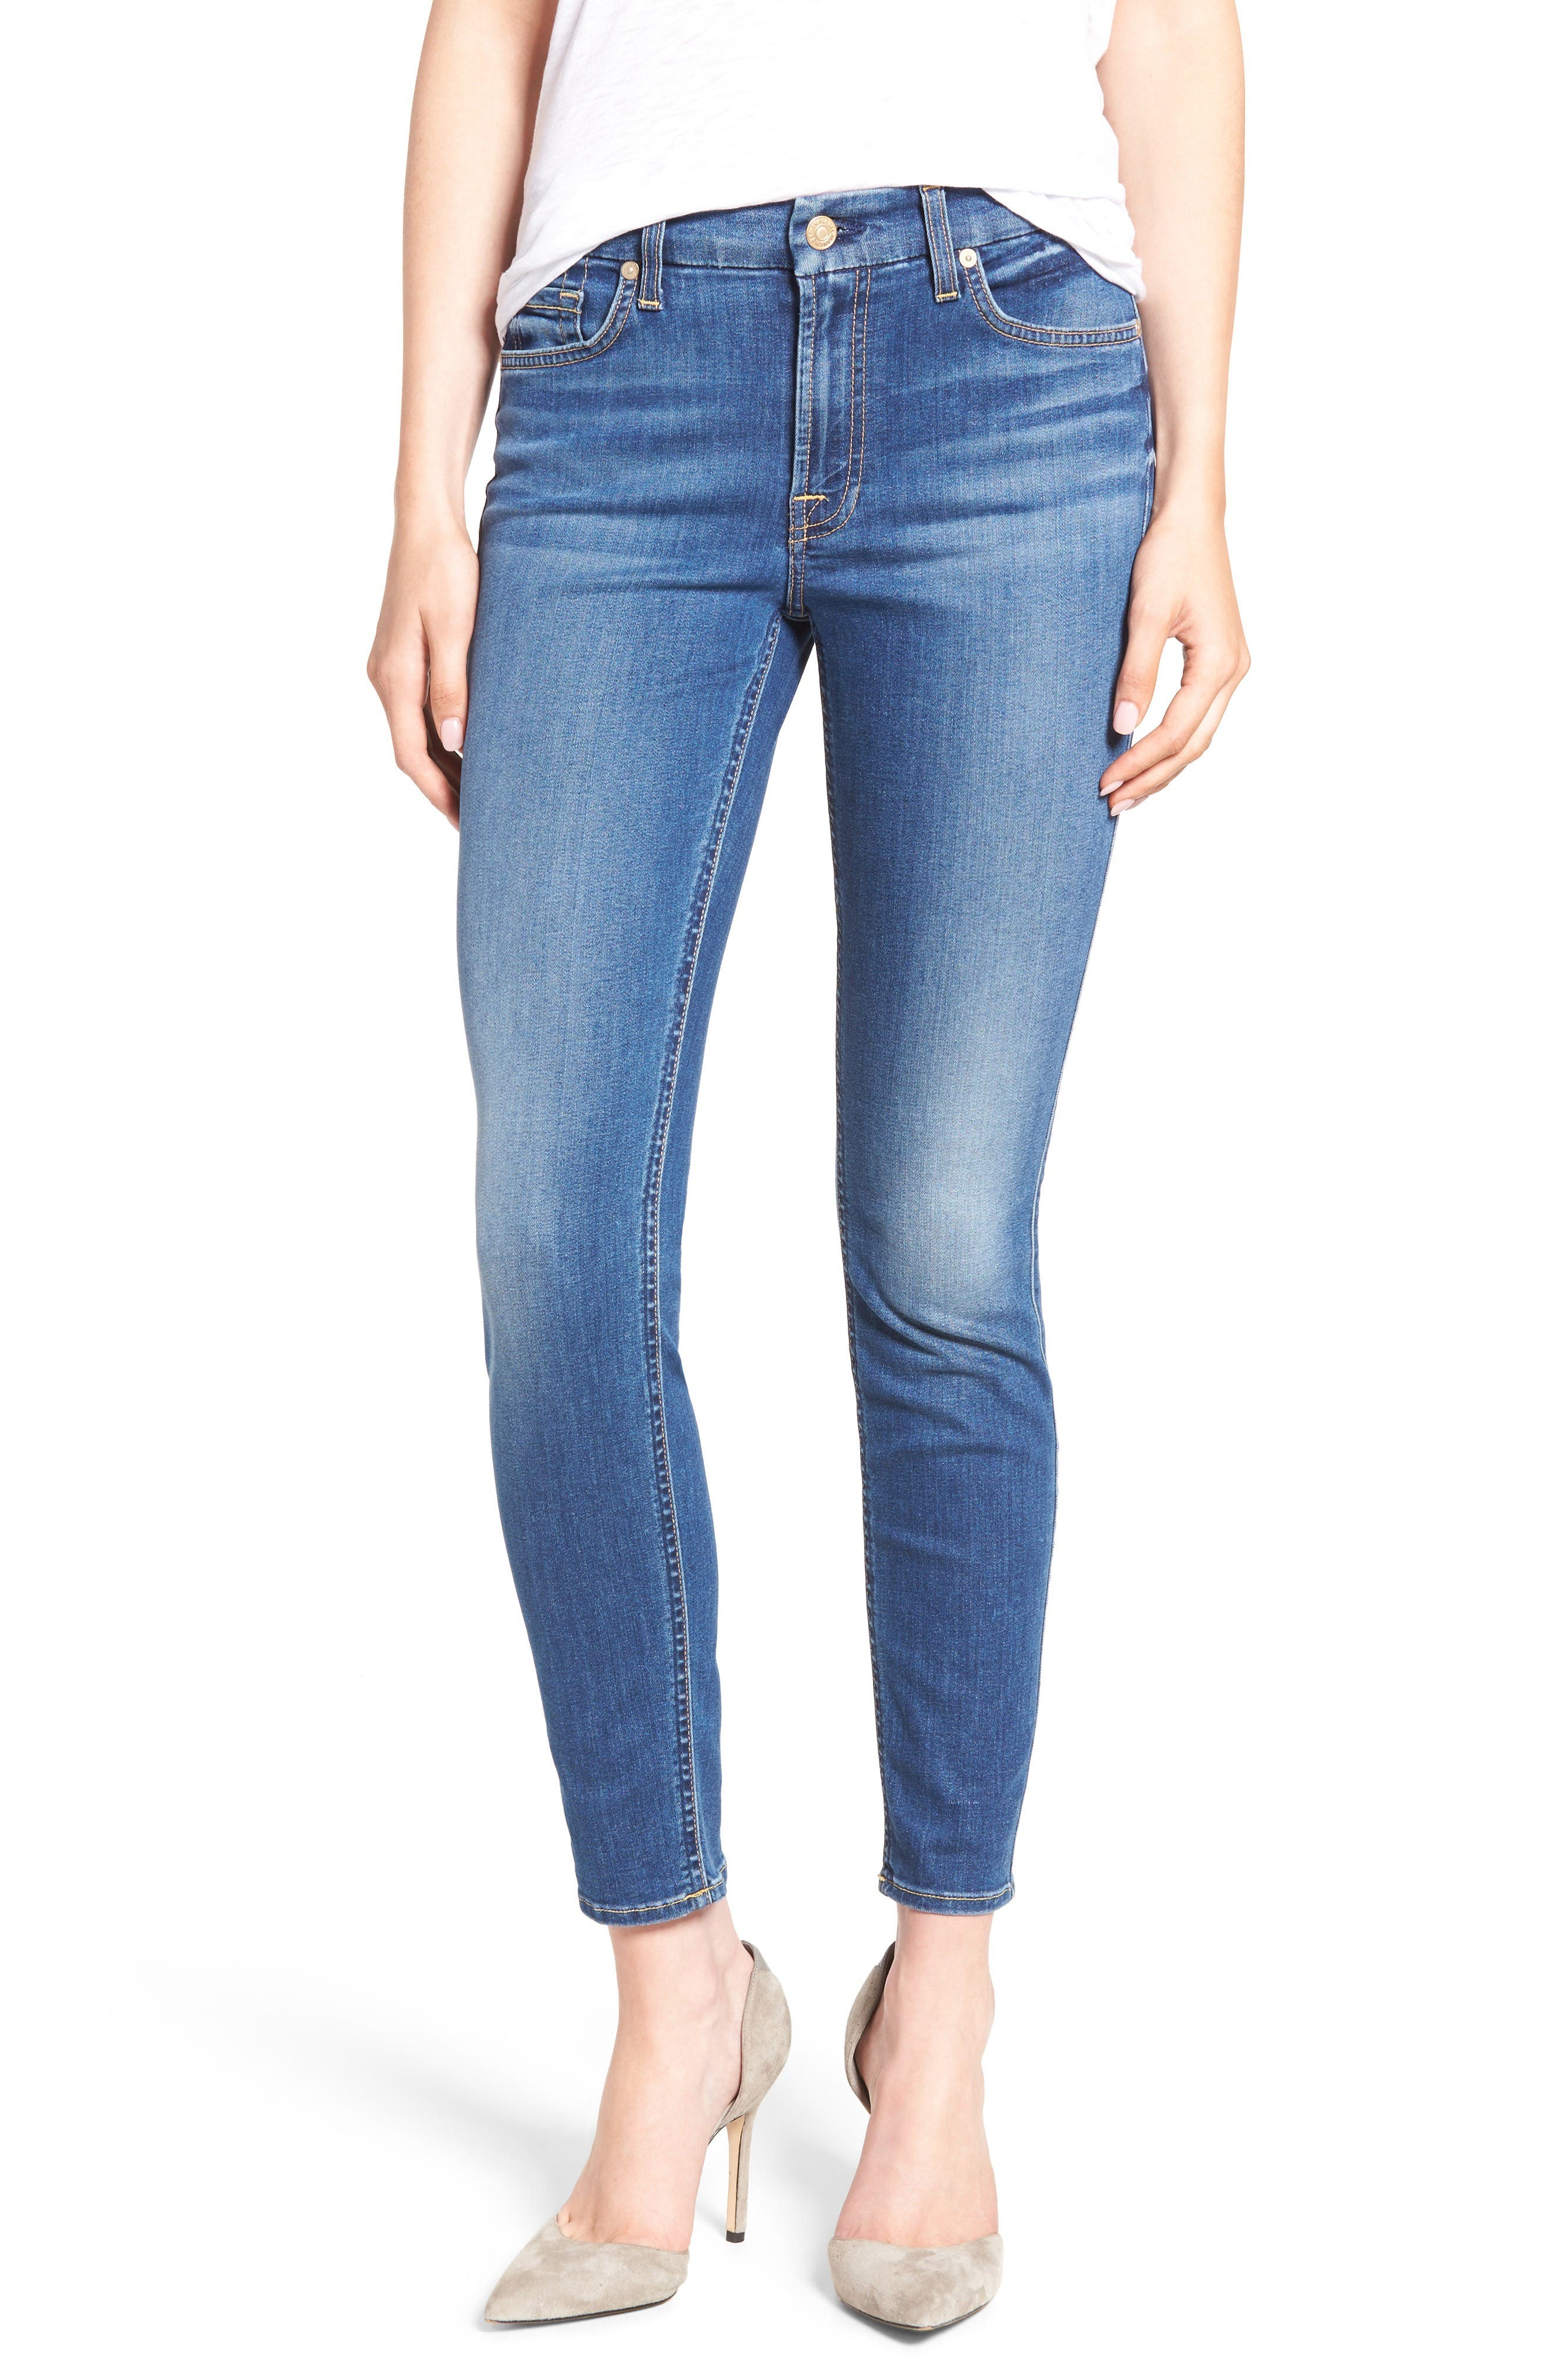 b(air) Ankle Skinny Jeans,                         Main,                         color, DUCHESS 2